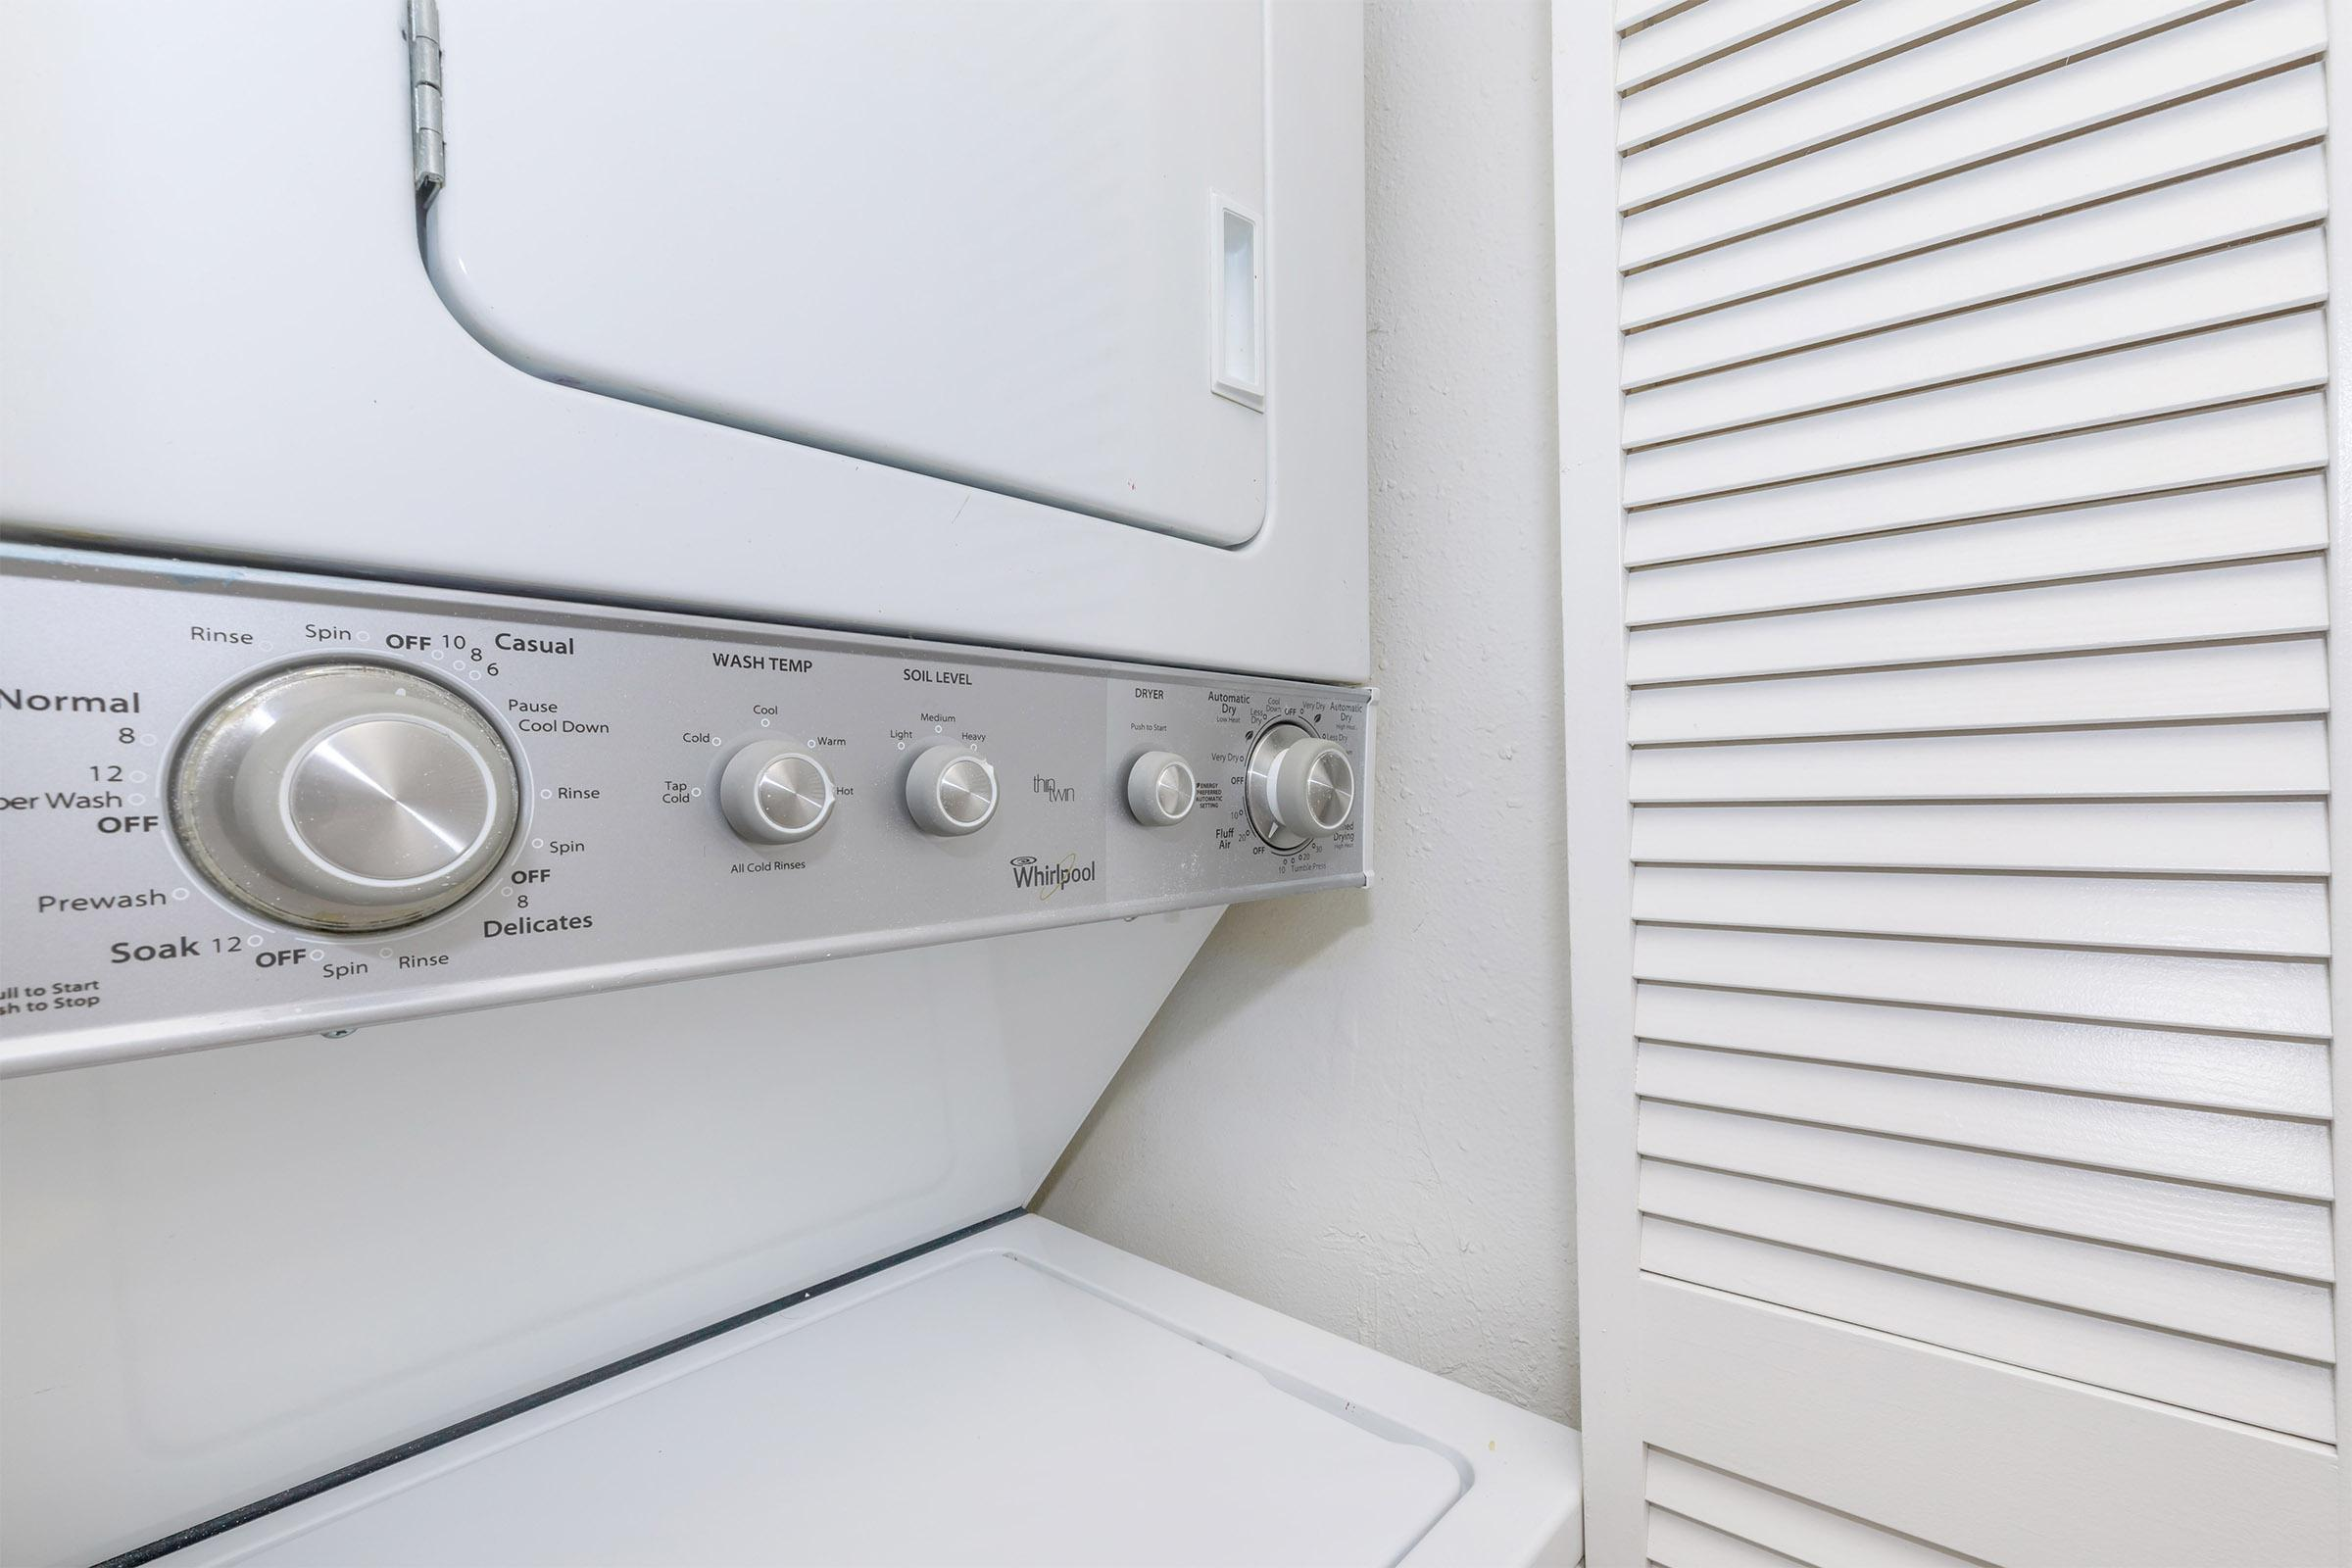 a white stove top oven